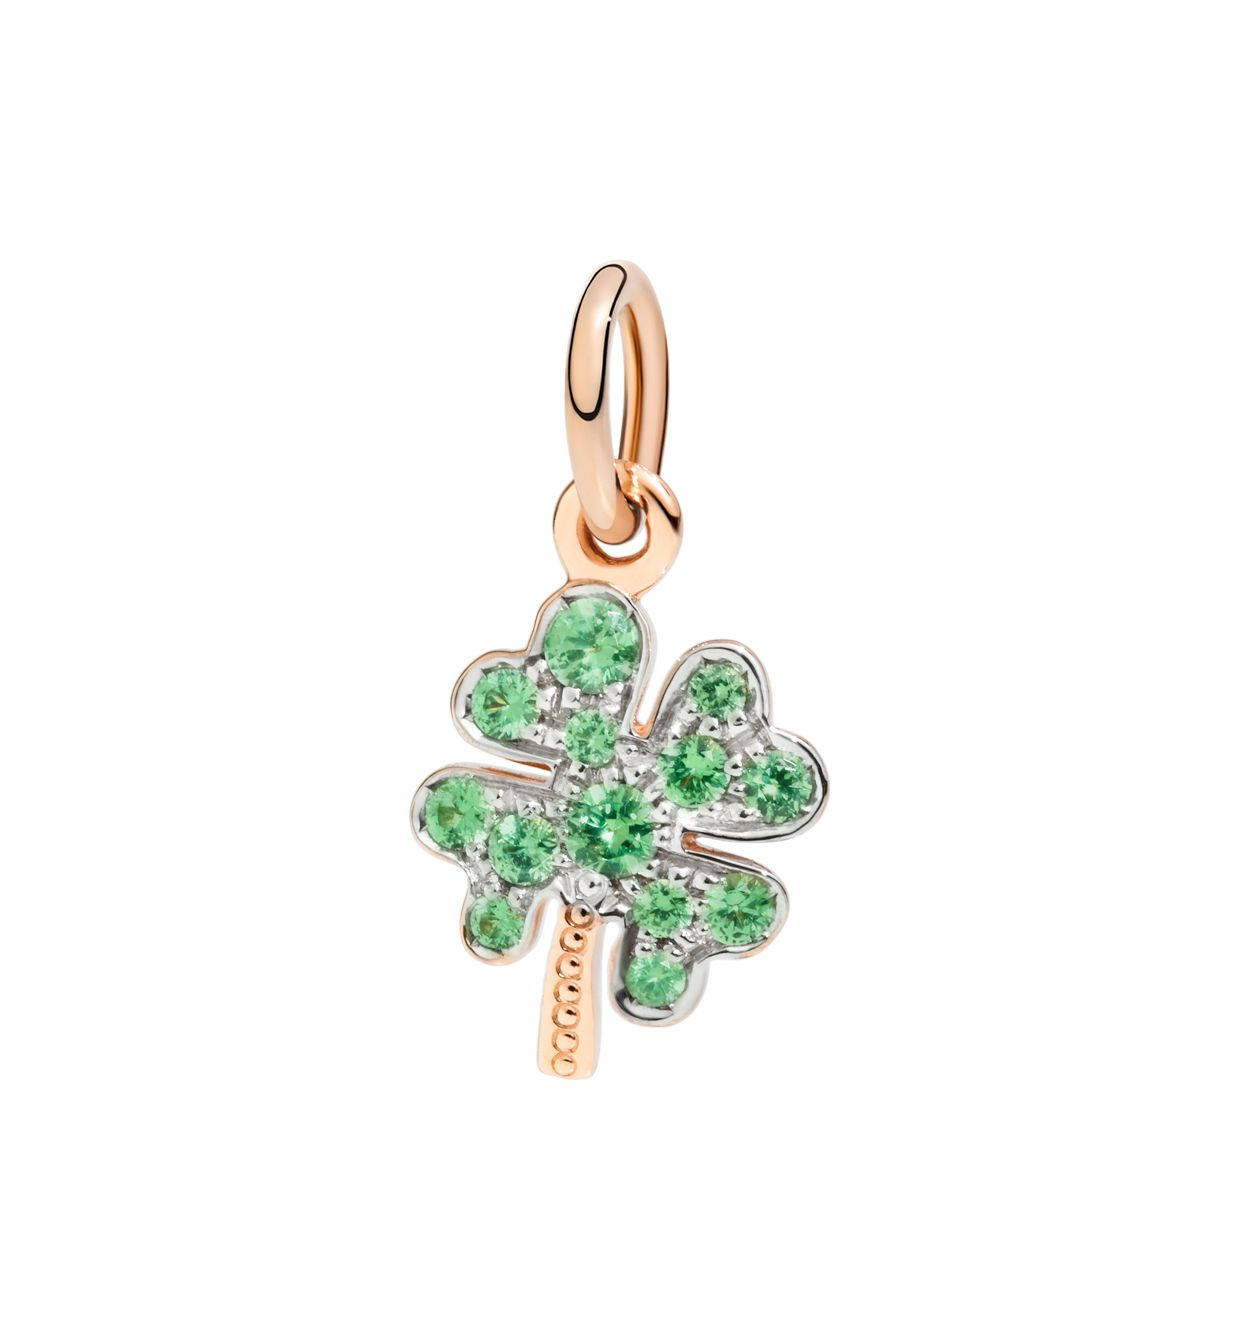 DoDo Four Leaf Clover Charm in 9k Rose Gold with Tsavorites - Orsini Jewellers NZ